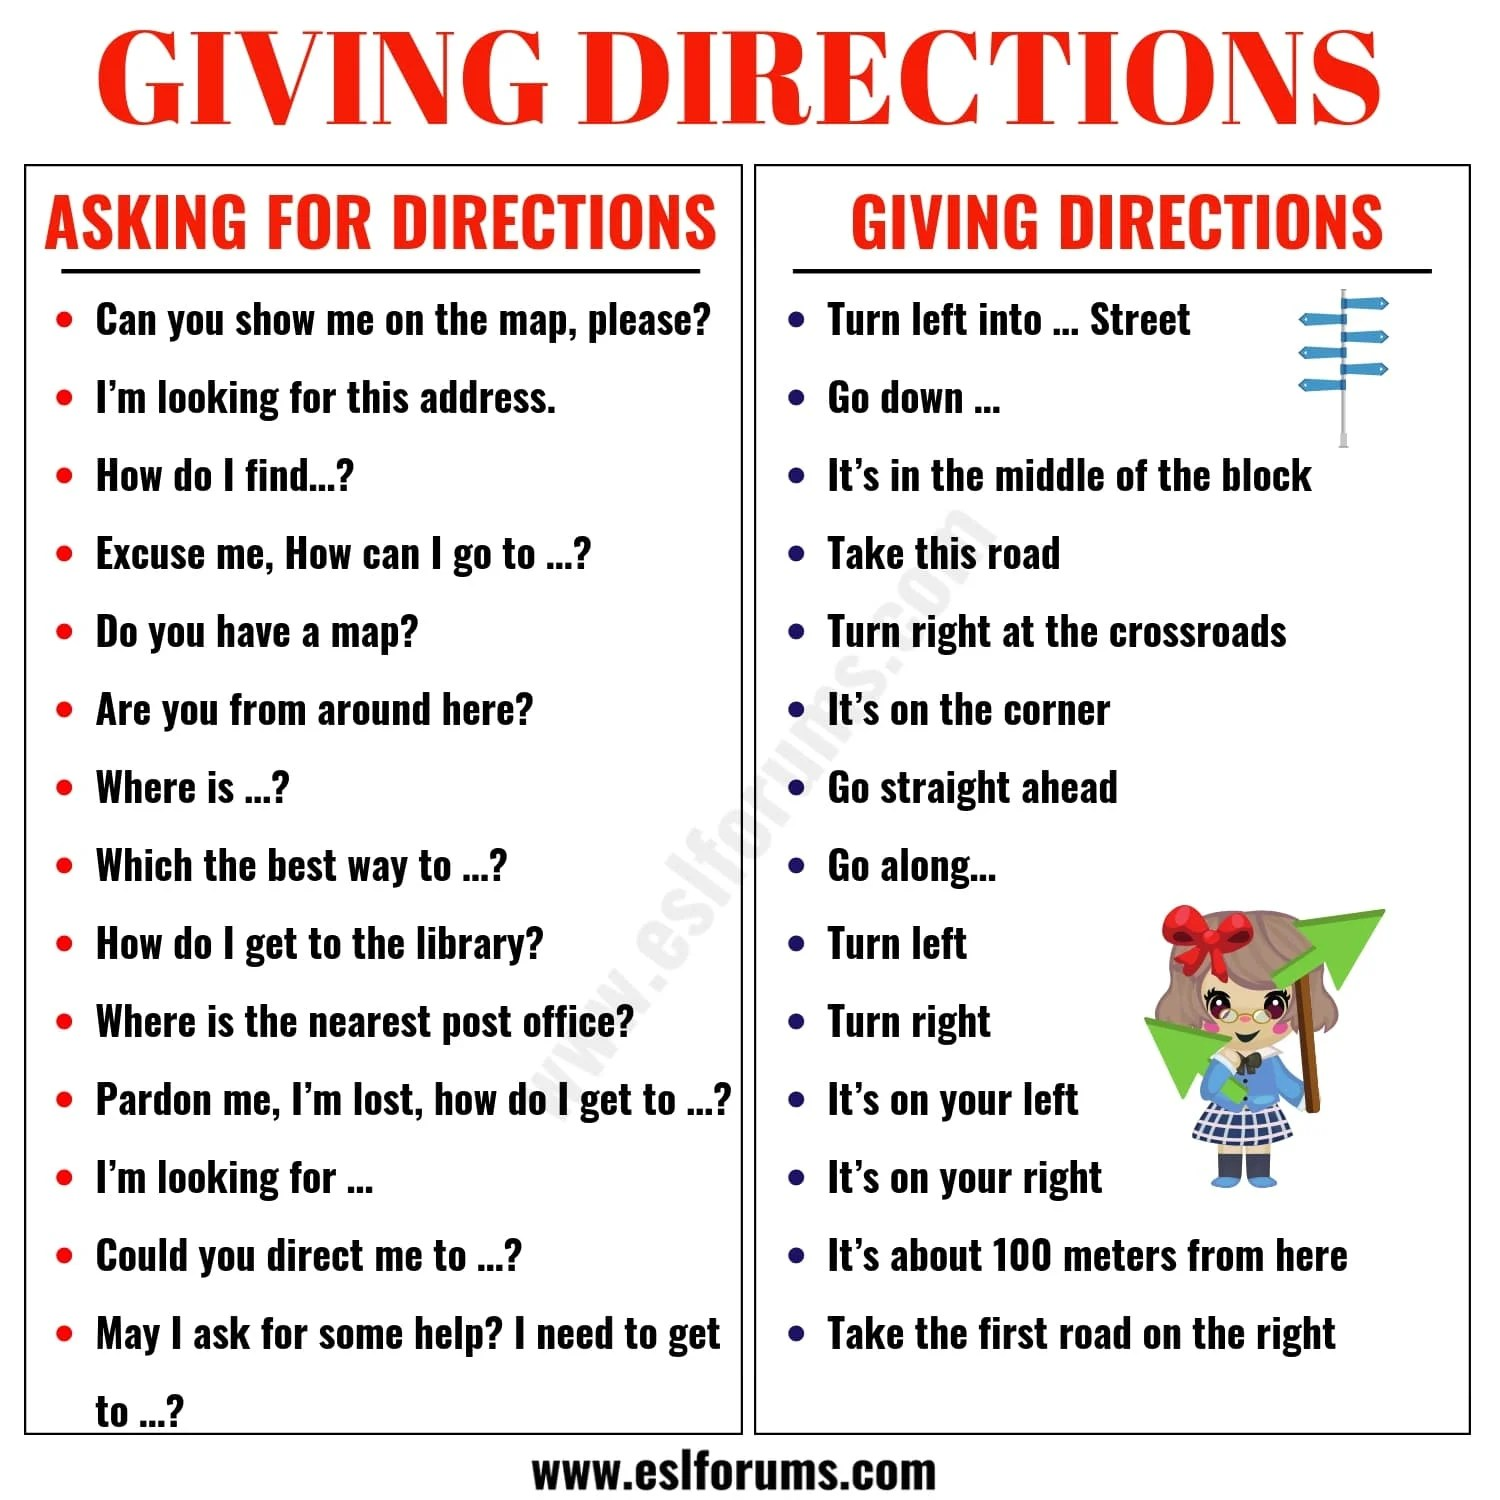 Asking For And Giving Directions In English